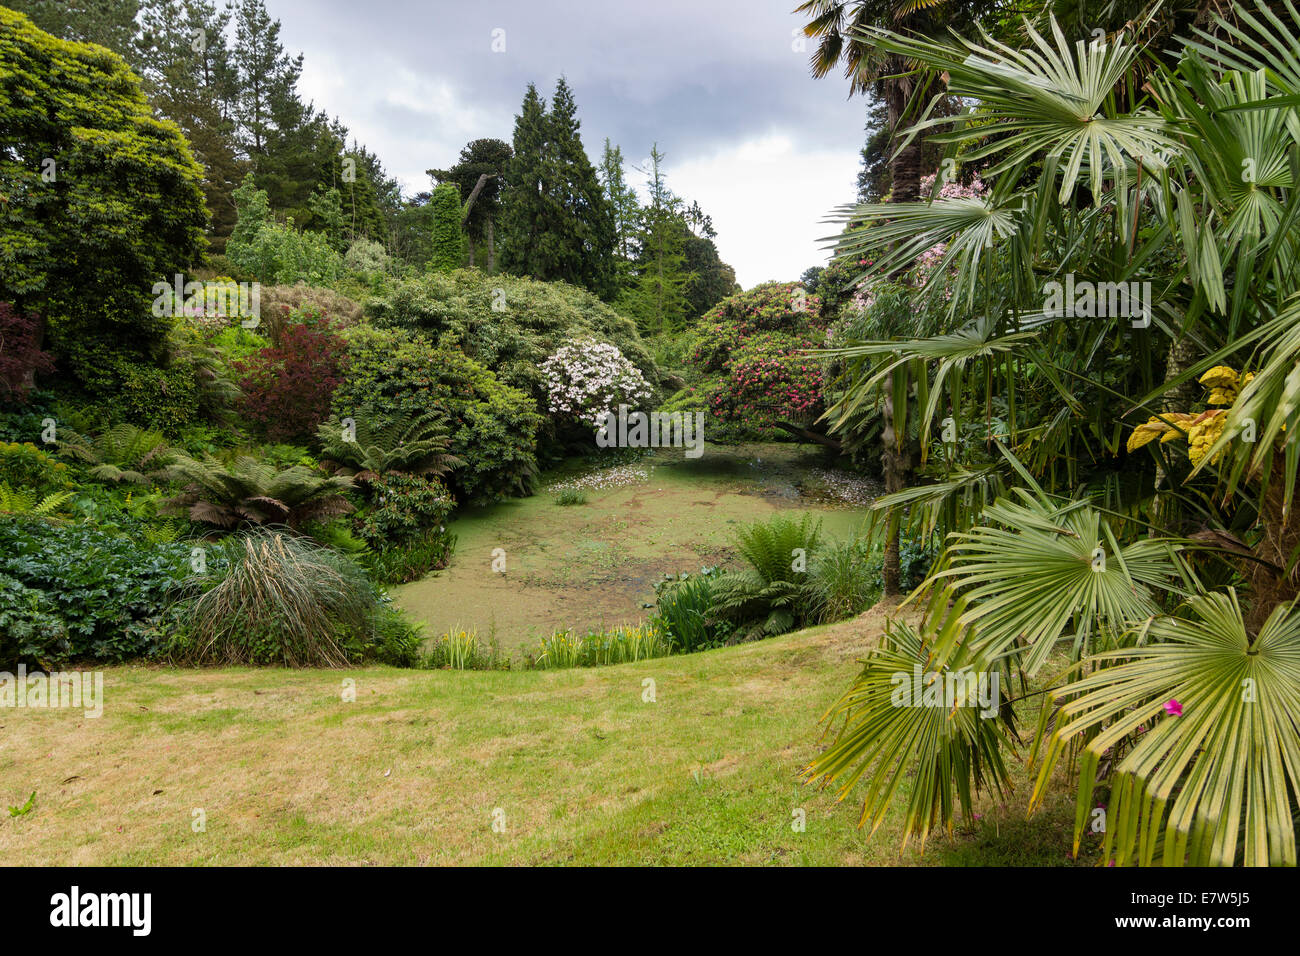 view-of-the-entrance-to-the-jungle-at-heligan-near-mevagissey-cornwall-E7W5J5.jpg